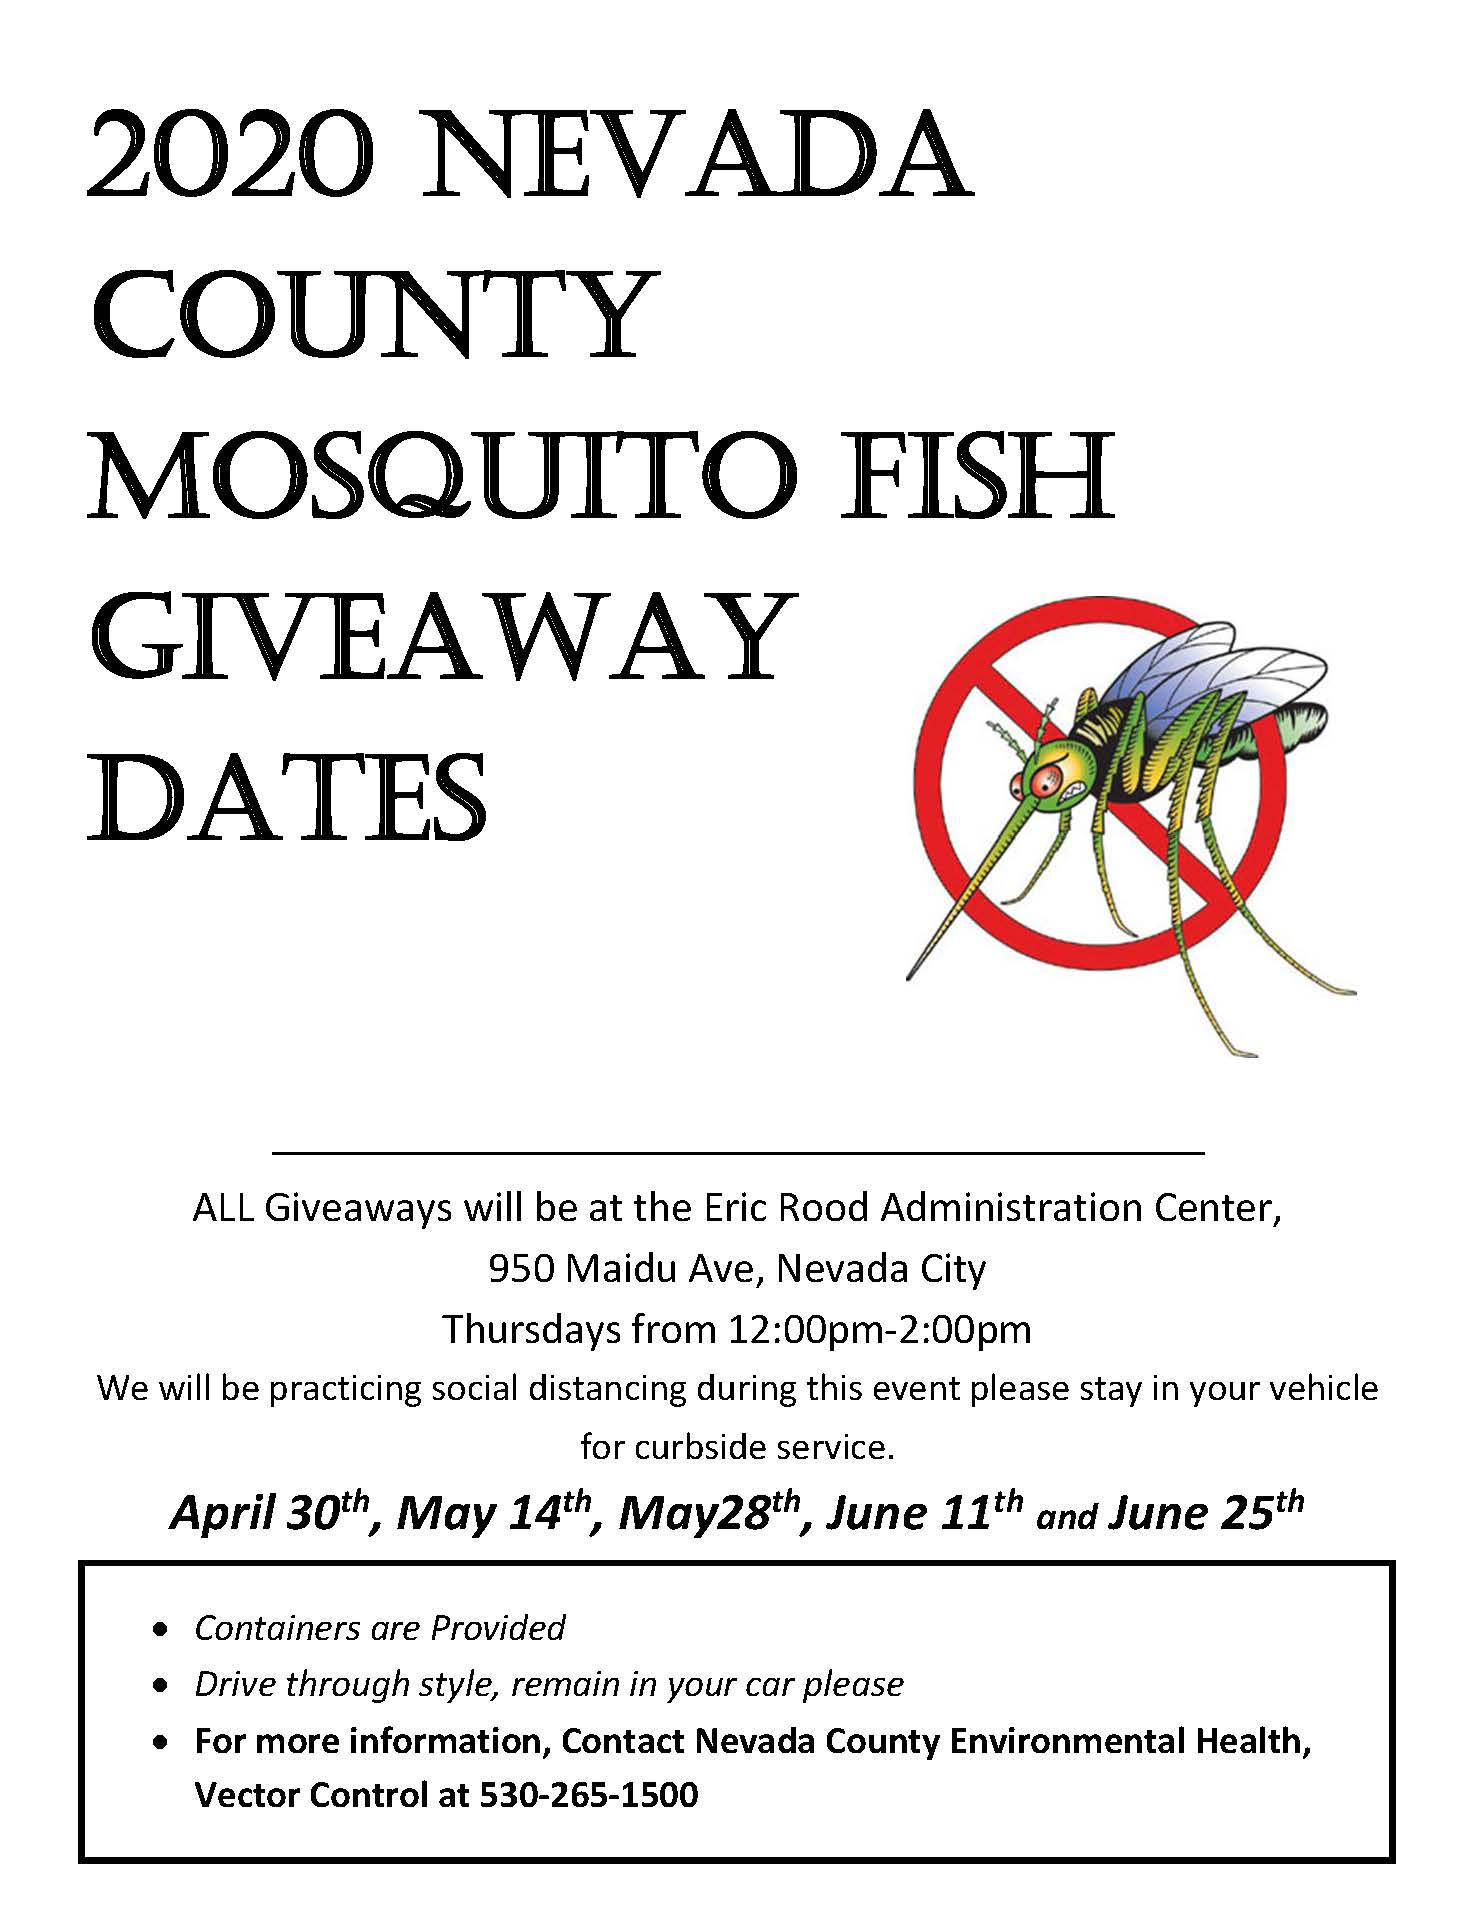 2020 mosquito fish giveaway flyer